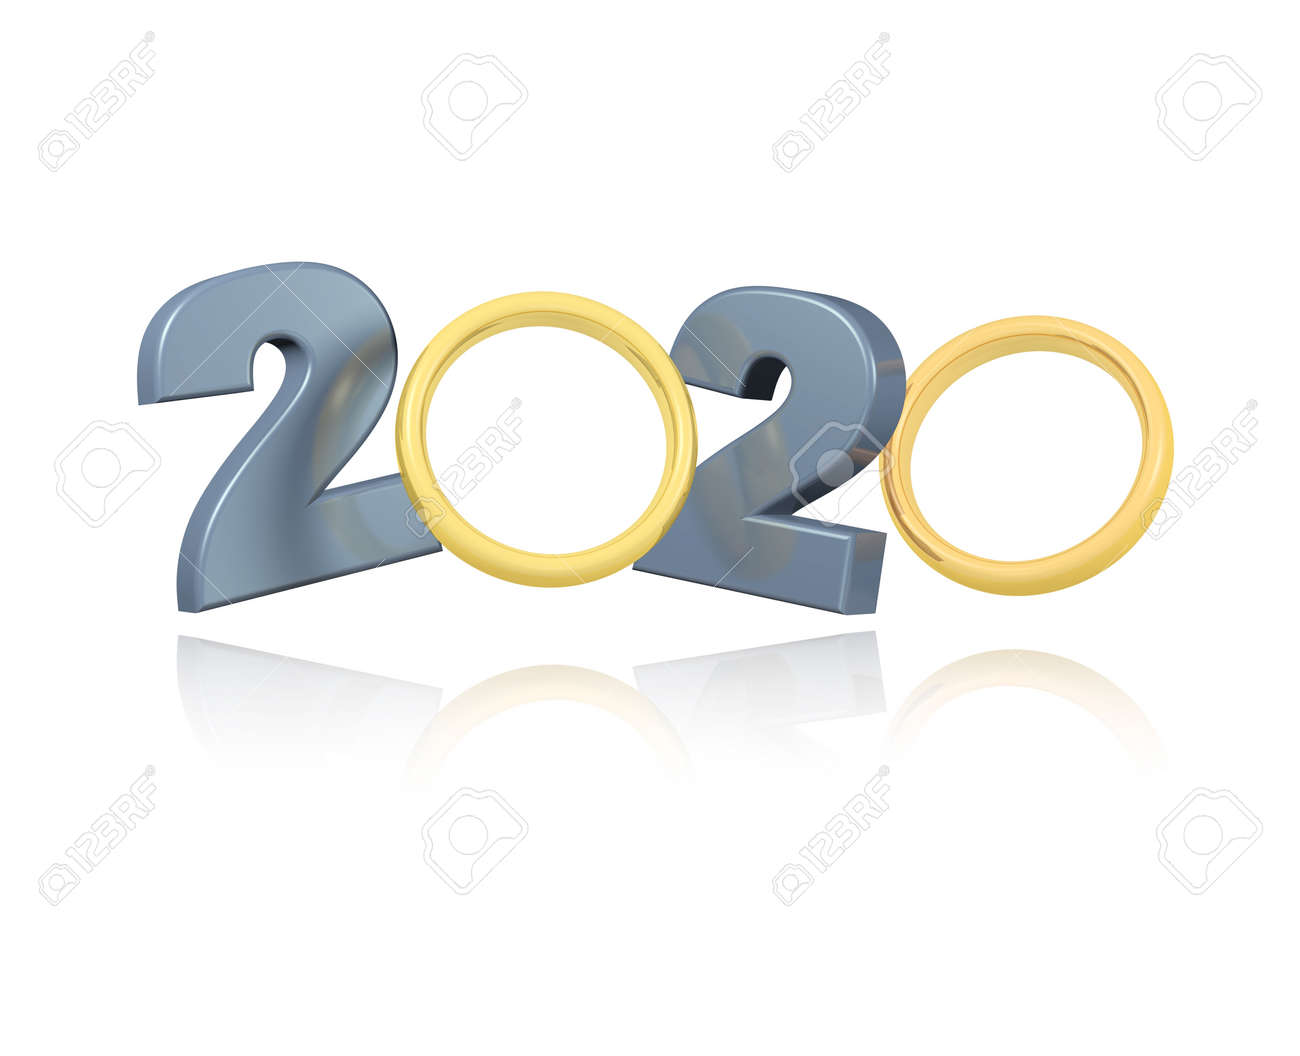 Gold Wedding Rings 2020 Design With A White Background Stock Photo Picture And Royalty Free Image Image 125484514